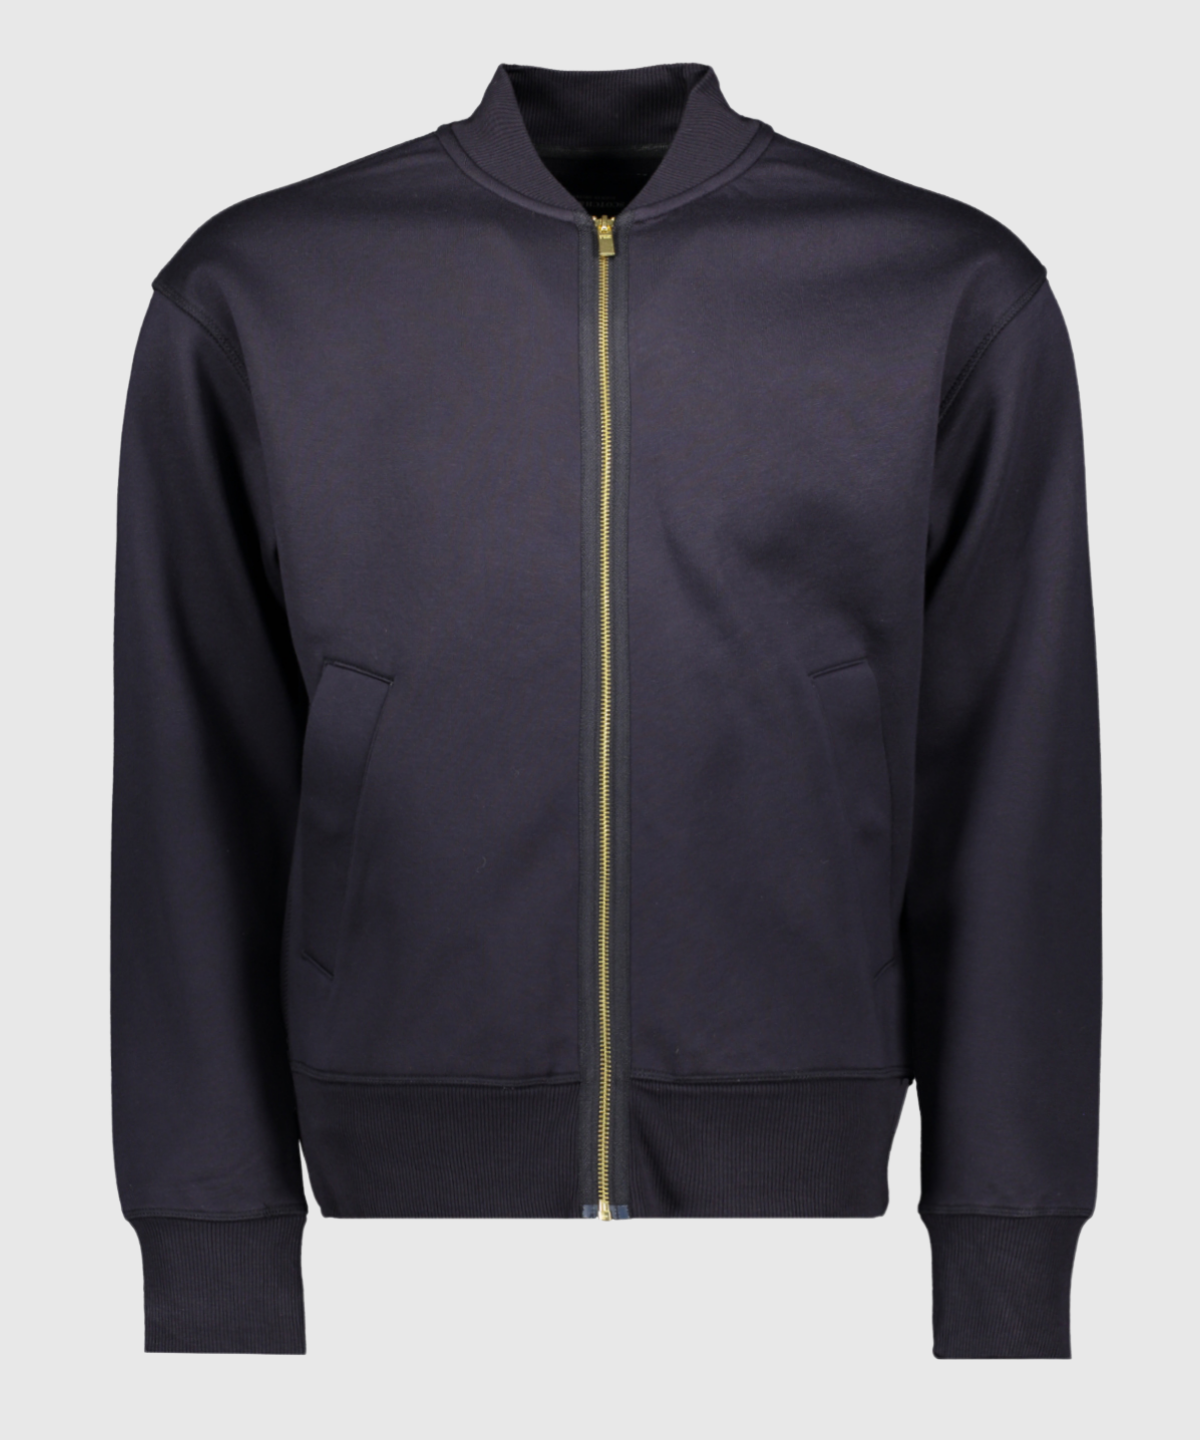 Relaxed Fit Zip-thru Bomber